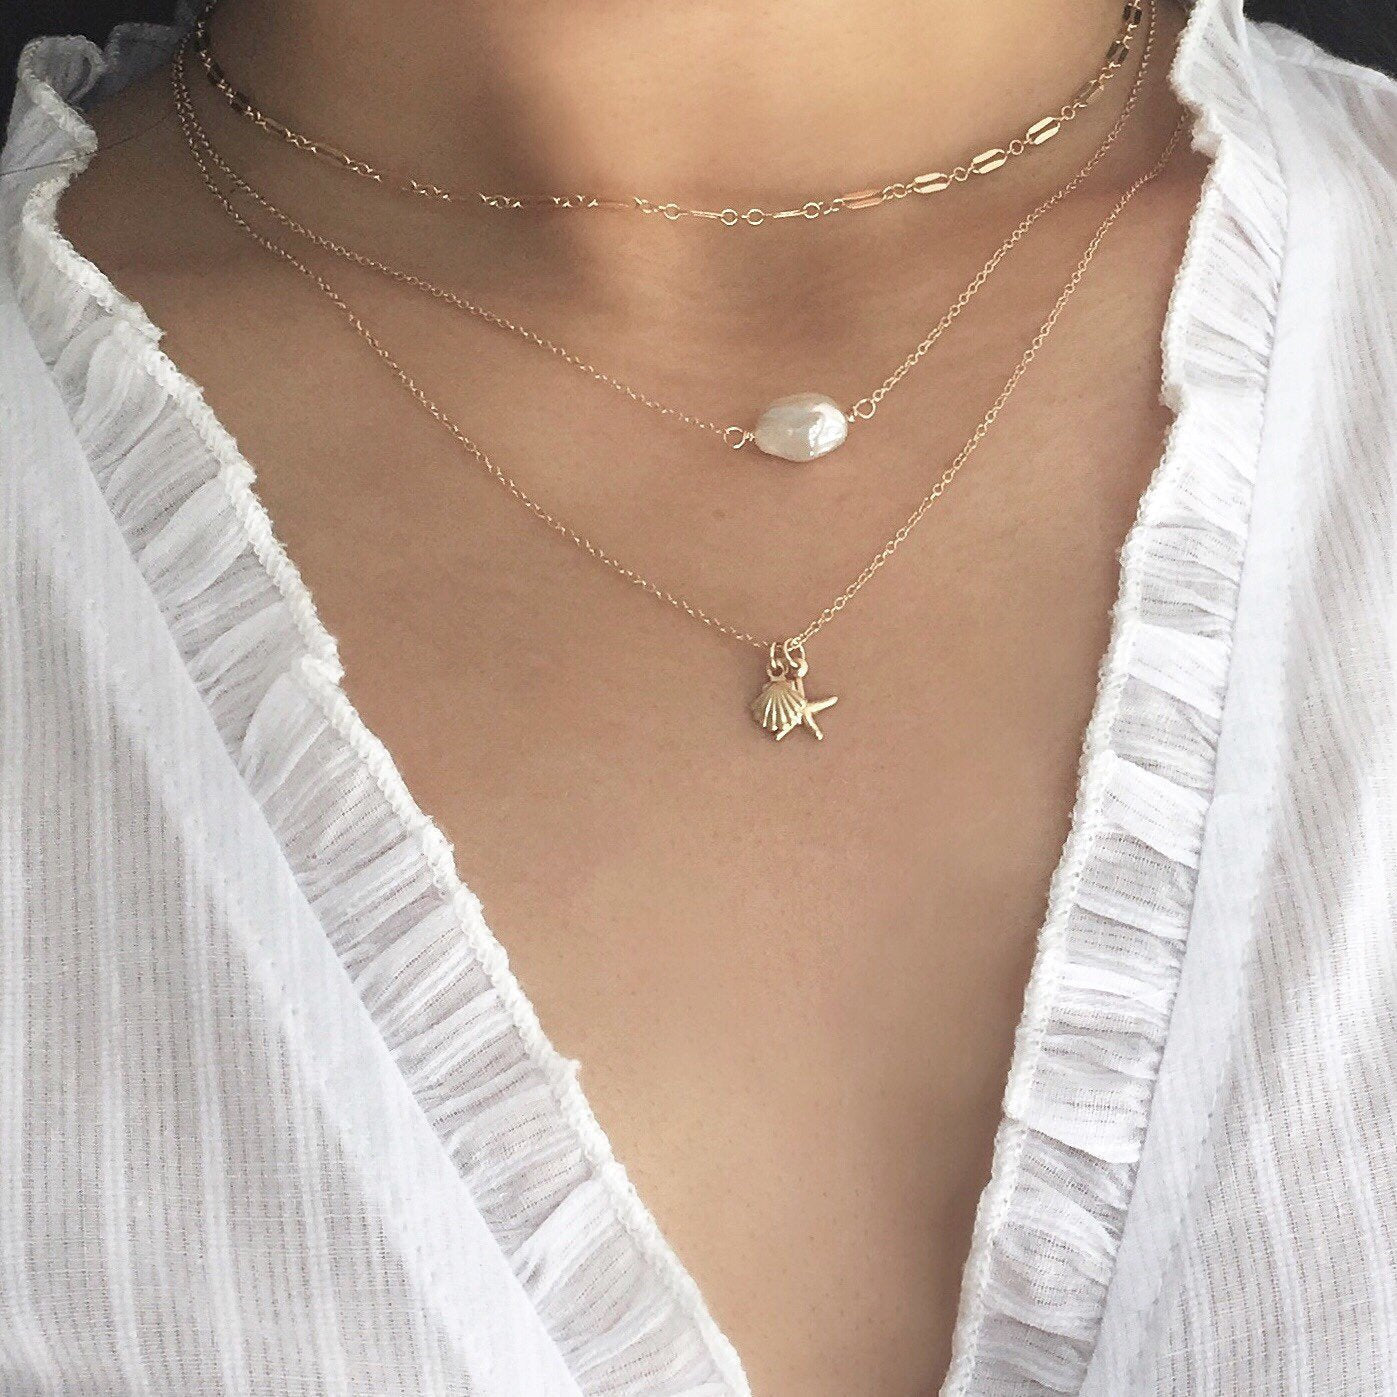 Single Pearl Necklace - Simple Pearl Necklace, Keshi Pearl Necklace, Freshwater Pearl Necklace, Real Pearl necklace, pearl choker |GFN00054